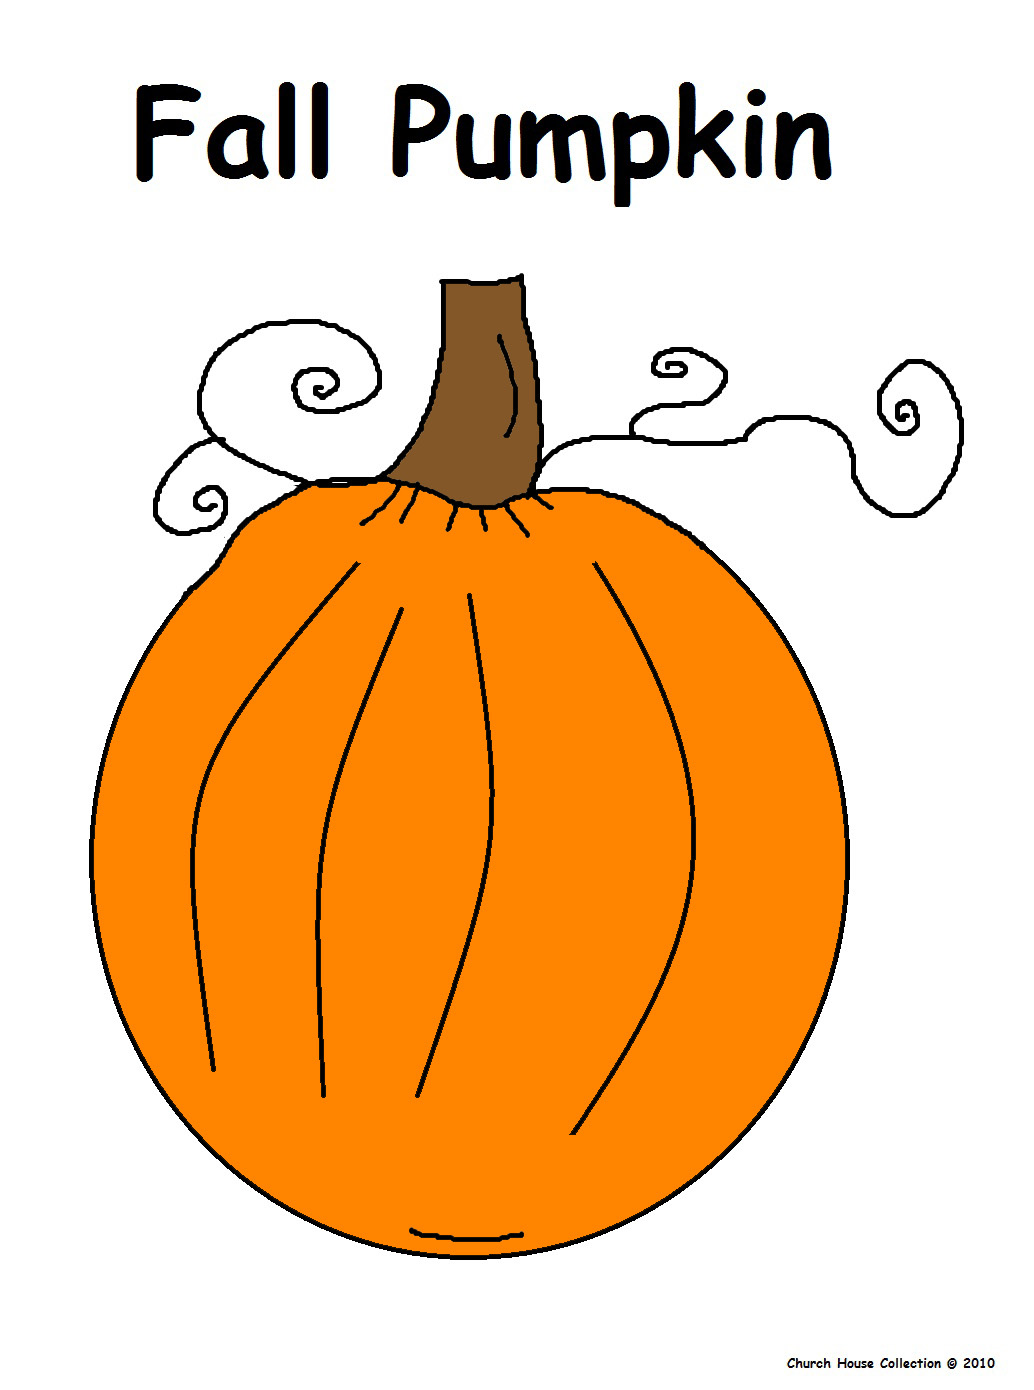 Church House Collection Blog: Christian Pumpkin Coloring Pages